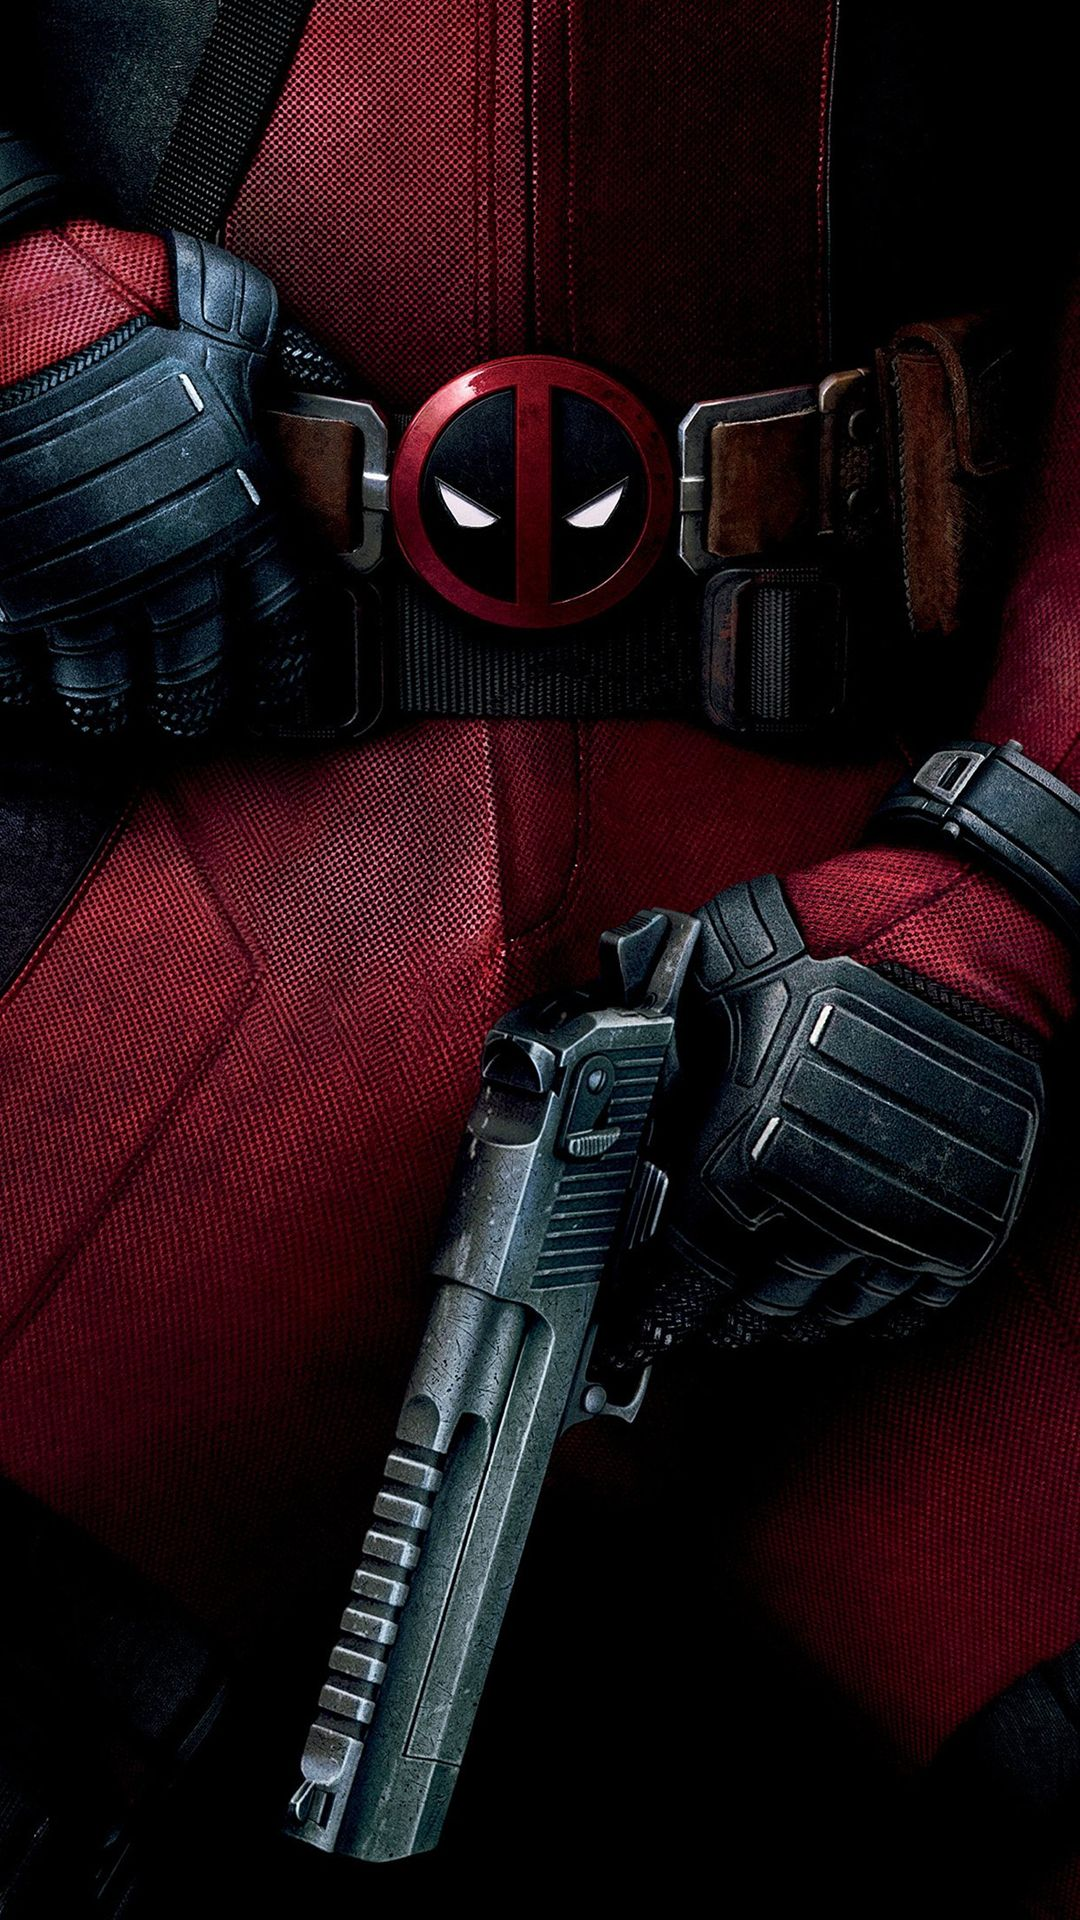 deadpool art illustration film hero iphone 6 wallpaper | deadpool